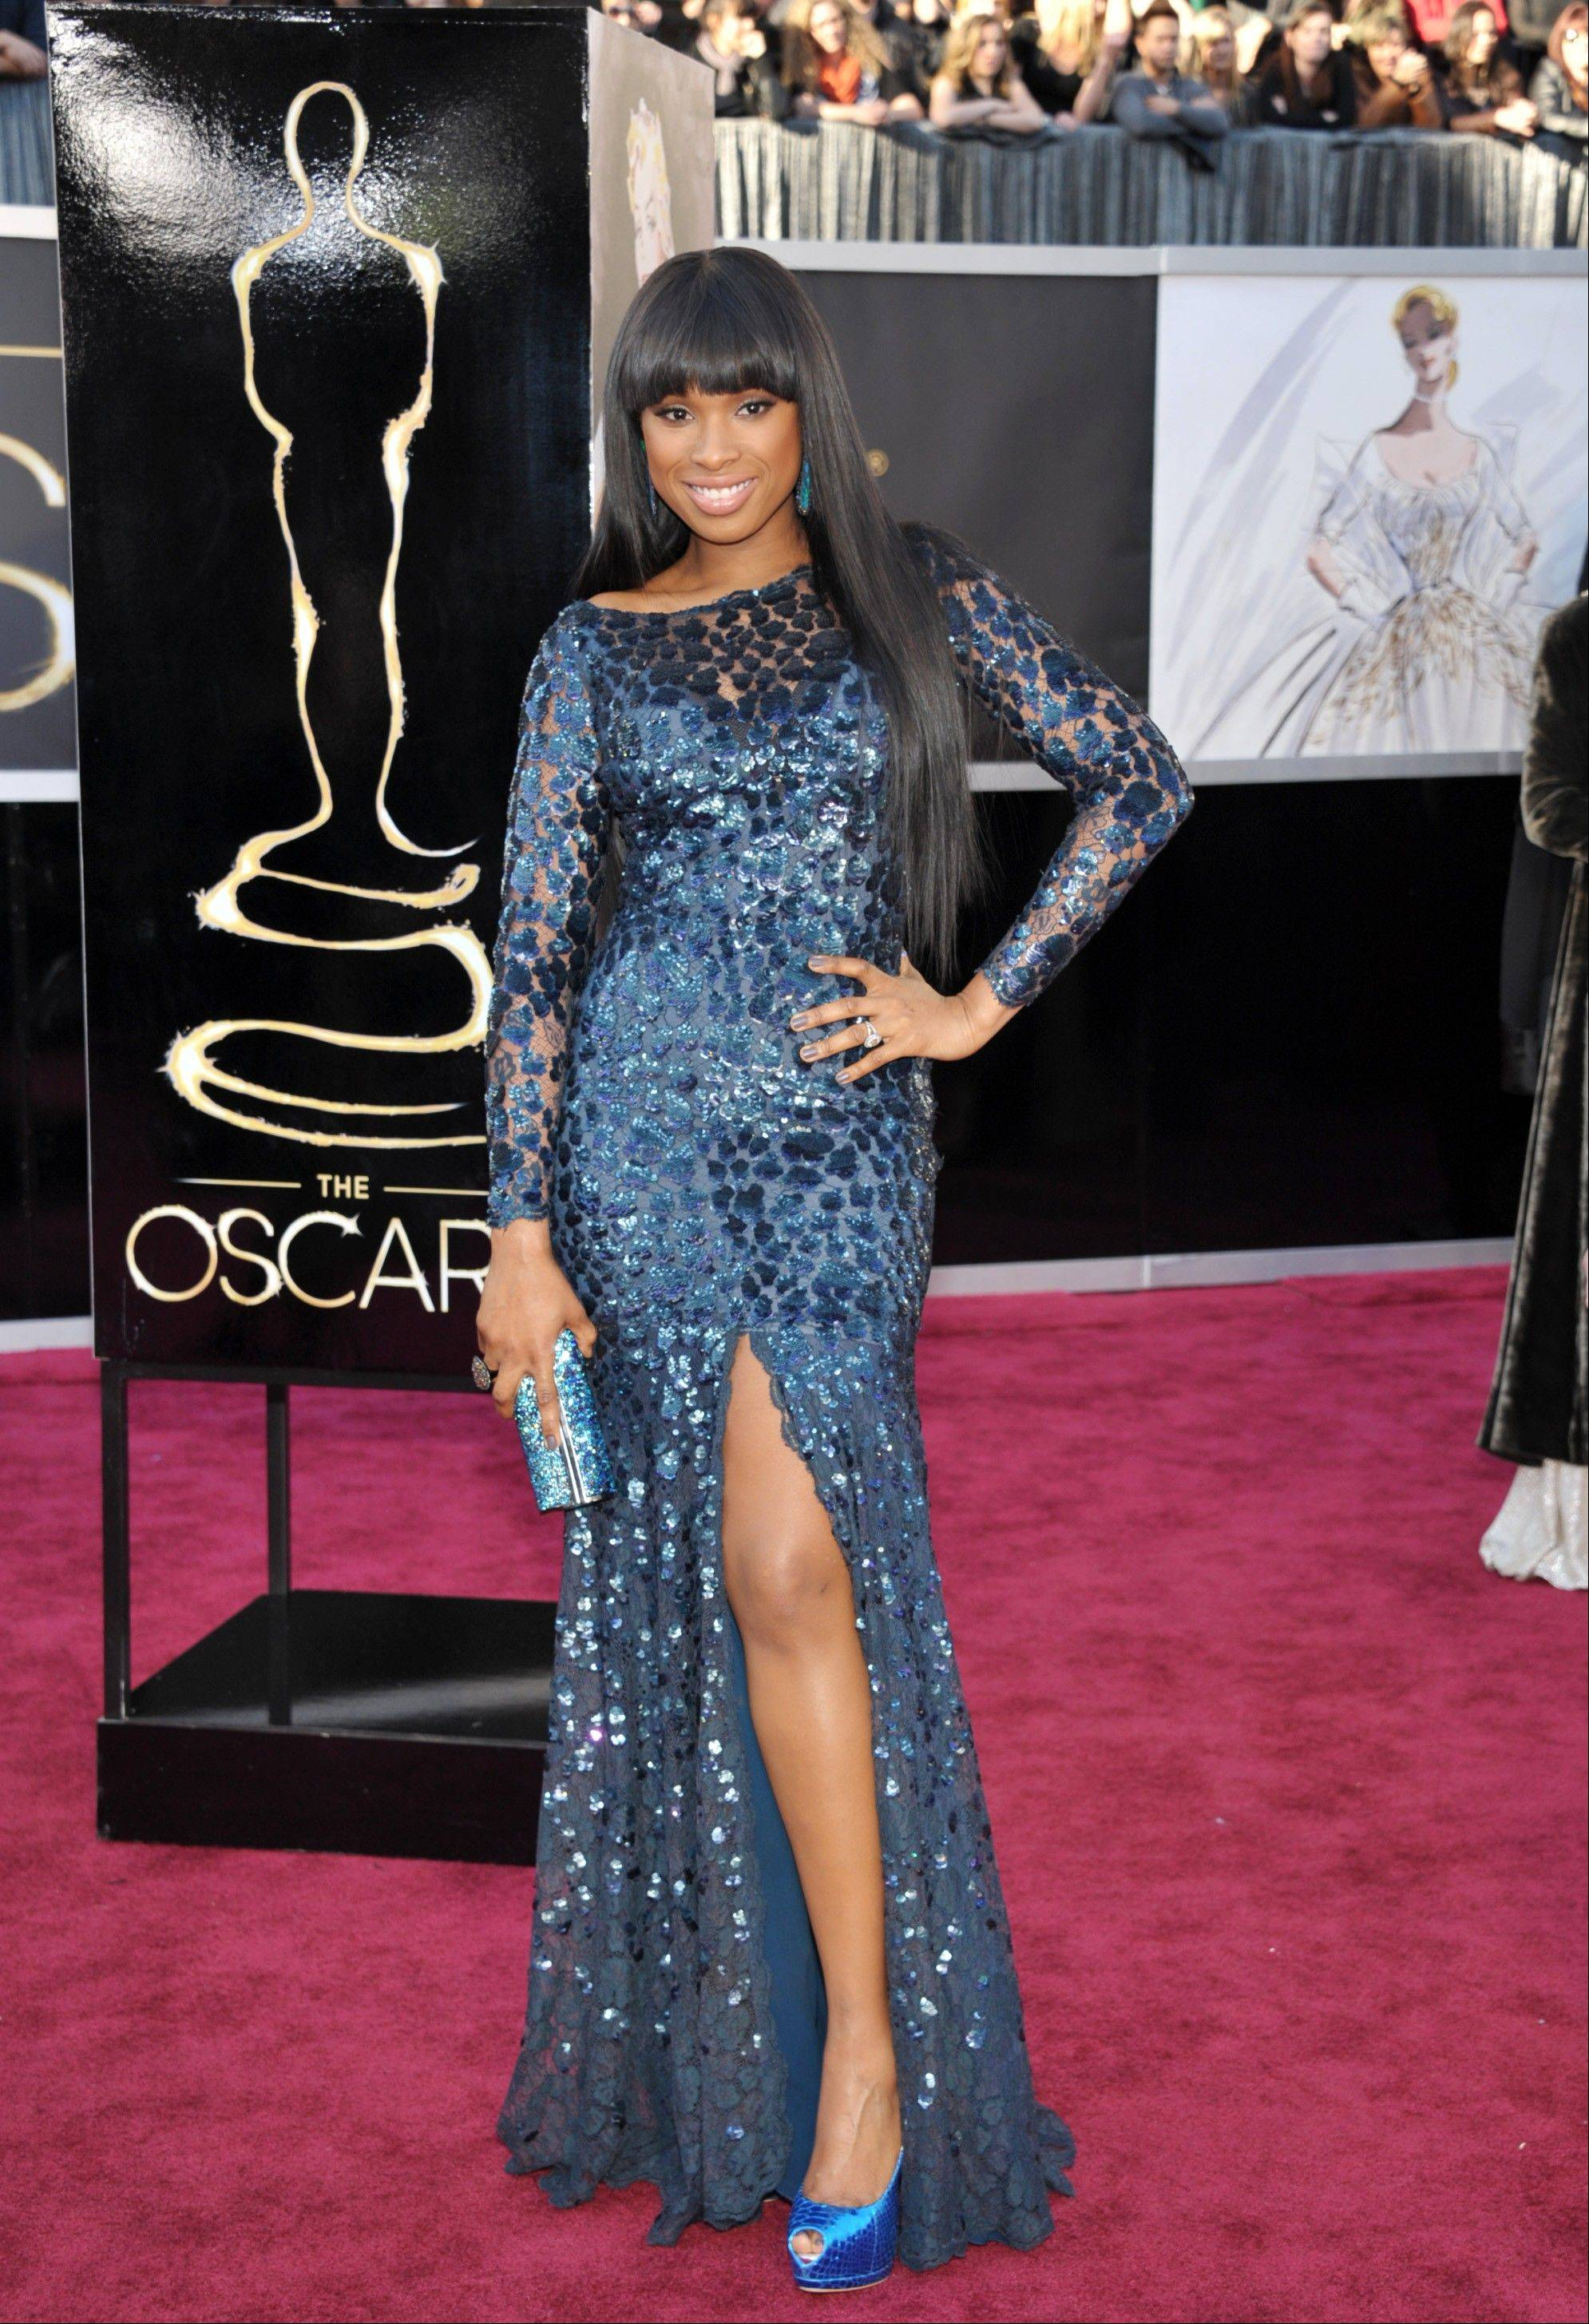 Actress/singer and Oscar winner Jennifer Hudson opts for blue. Hudson was slated to perform during the telecast.